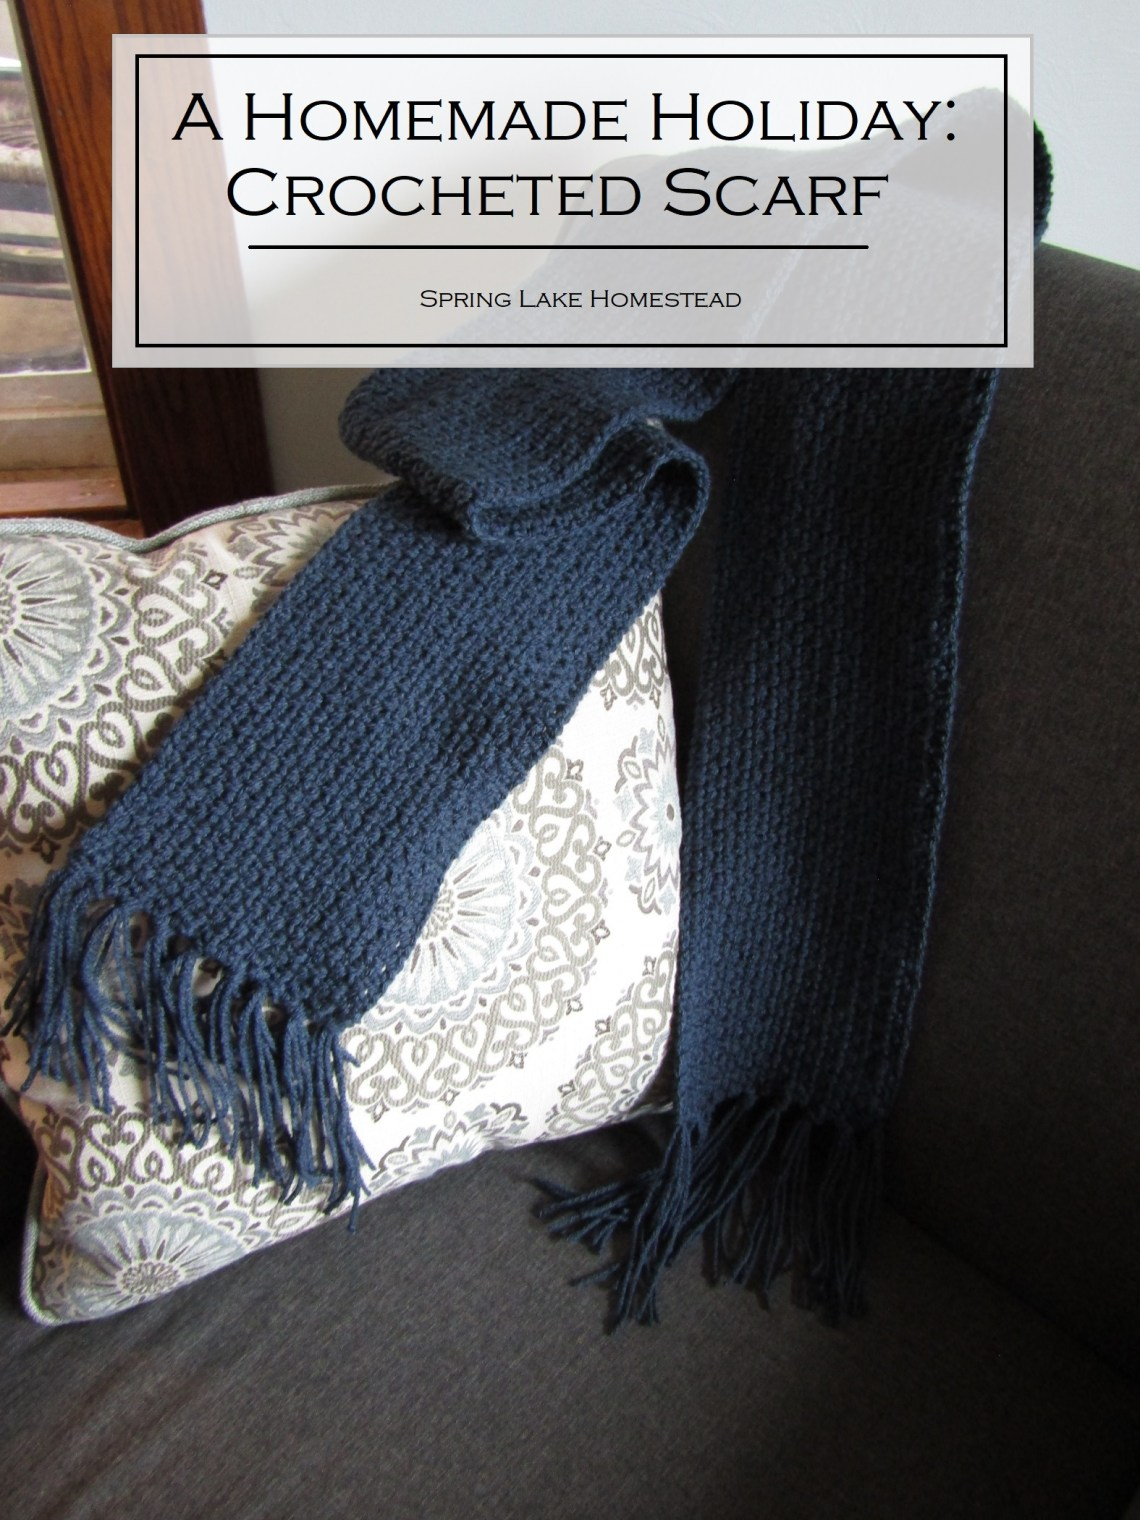 A Homemade Holiday: Crocheted Scarf